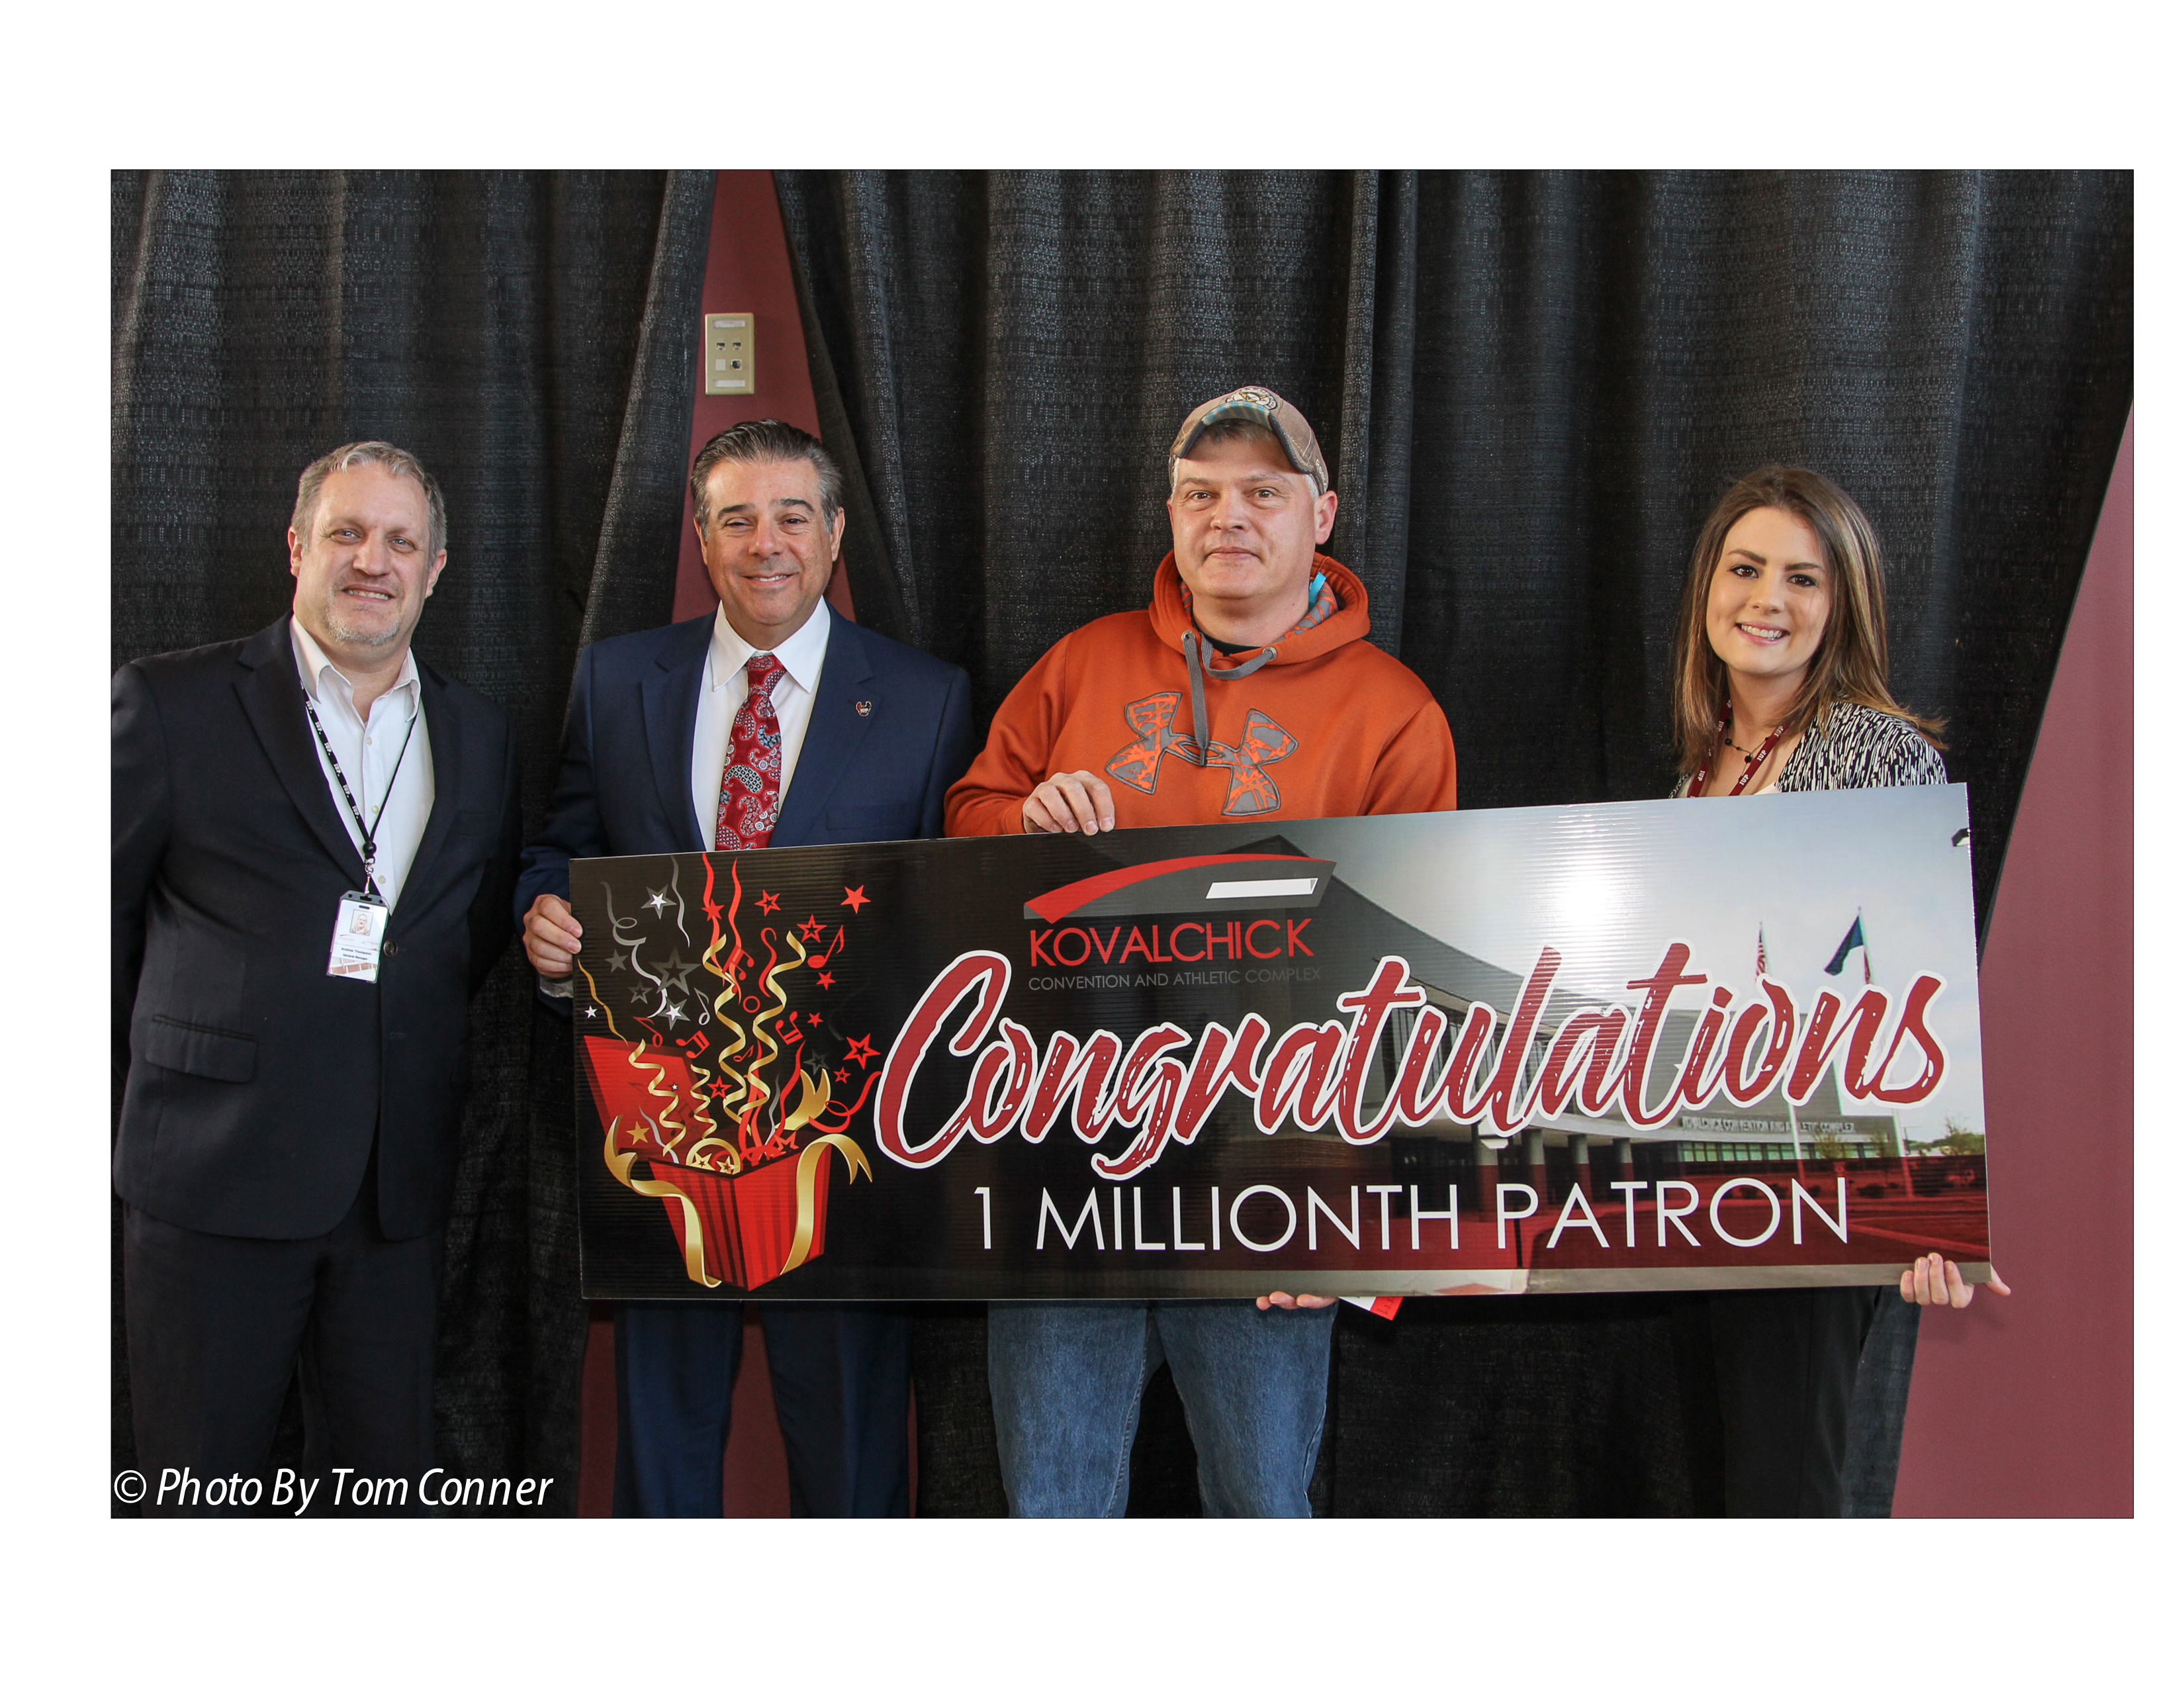 The Kovalchick Complex Welcomes 1 Millionth Patron